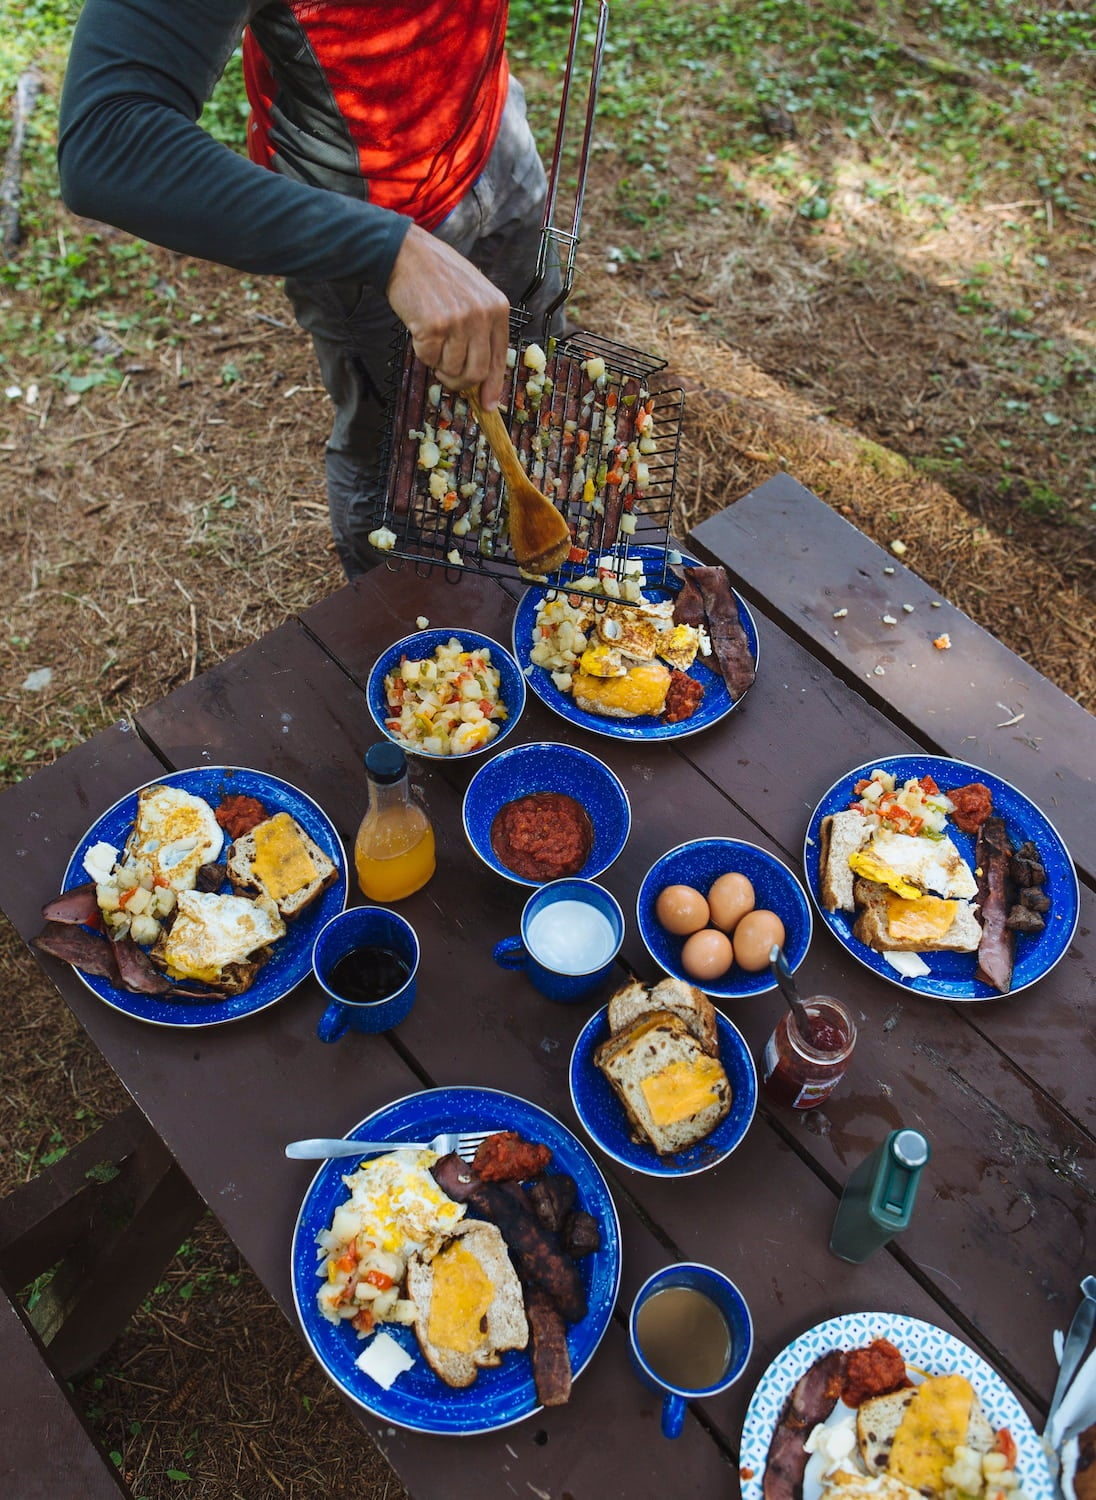 Camper plating a yummy breakfast of eggs and toast on a picnic table at a campsite.